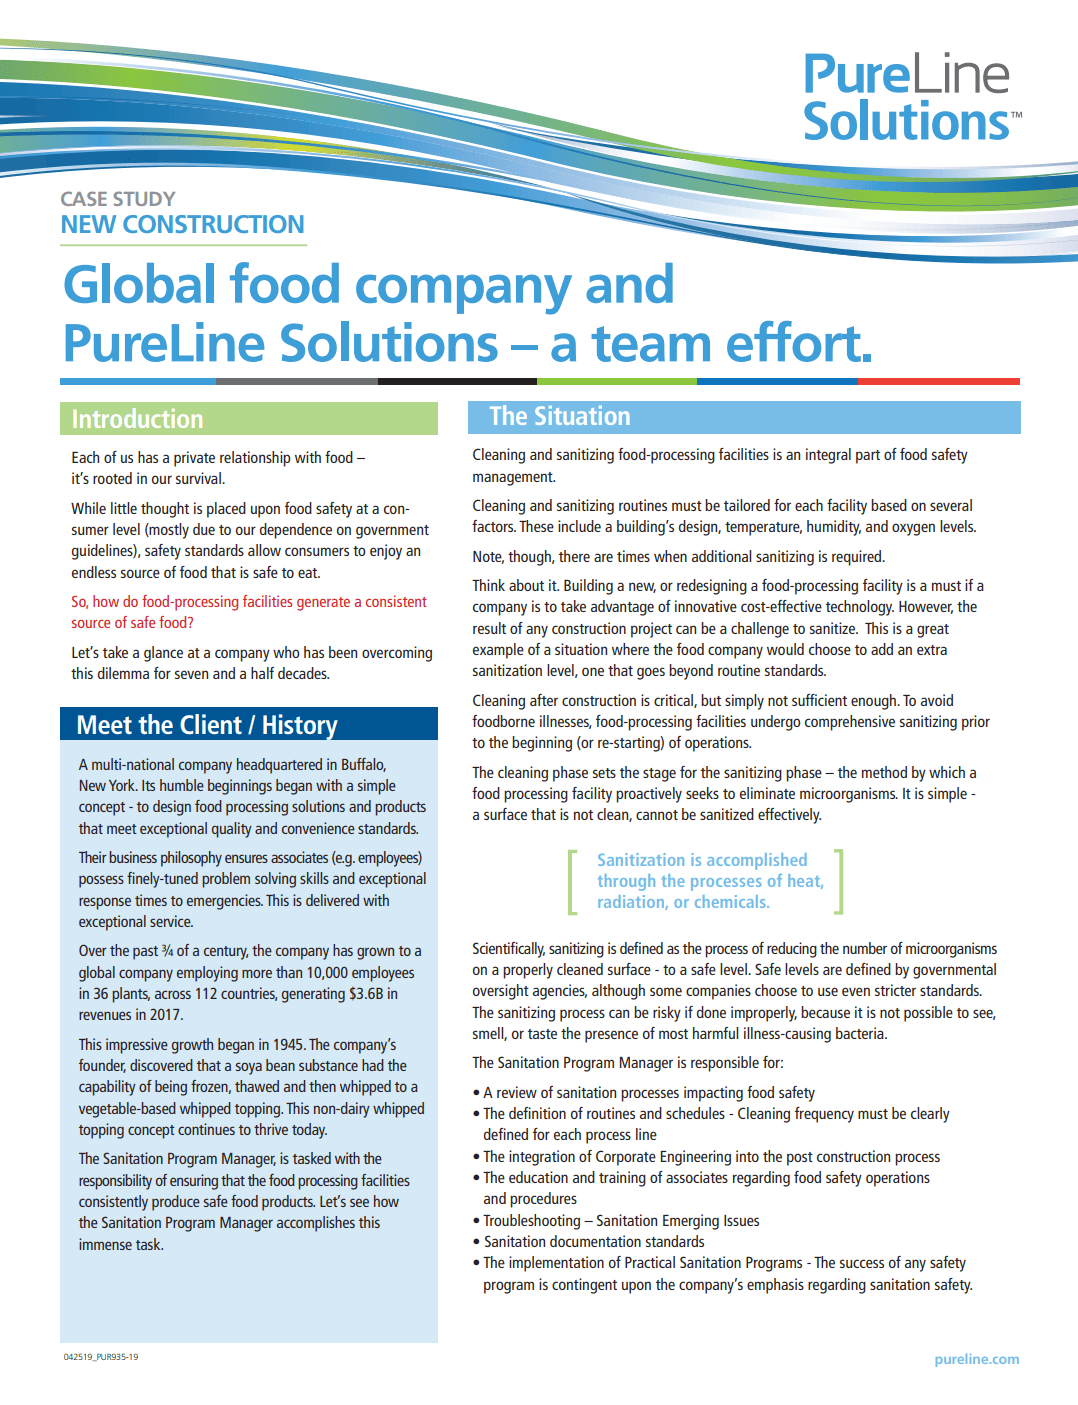 Case: Global food company post construction sanitization